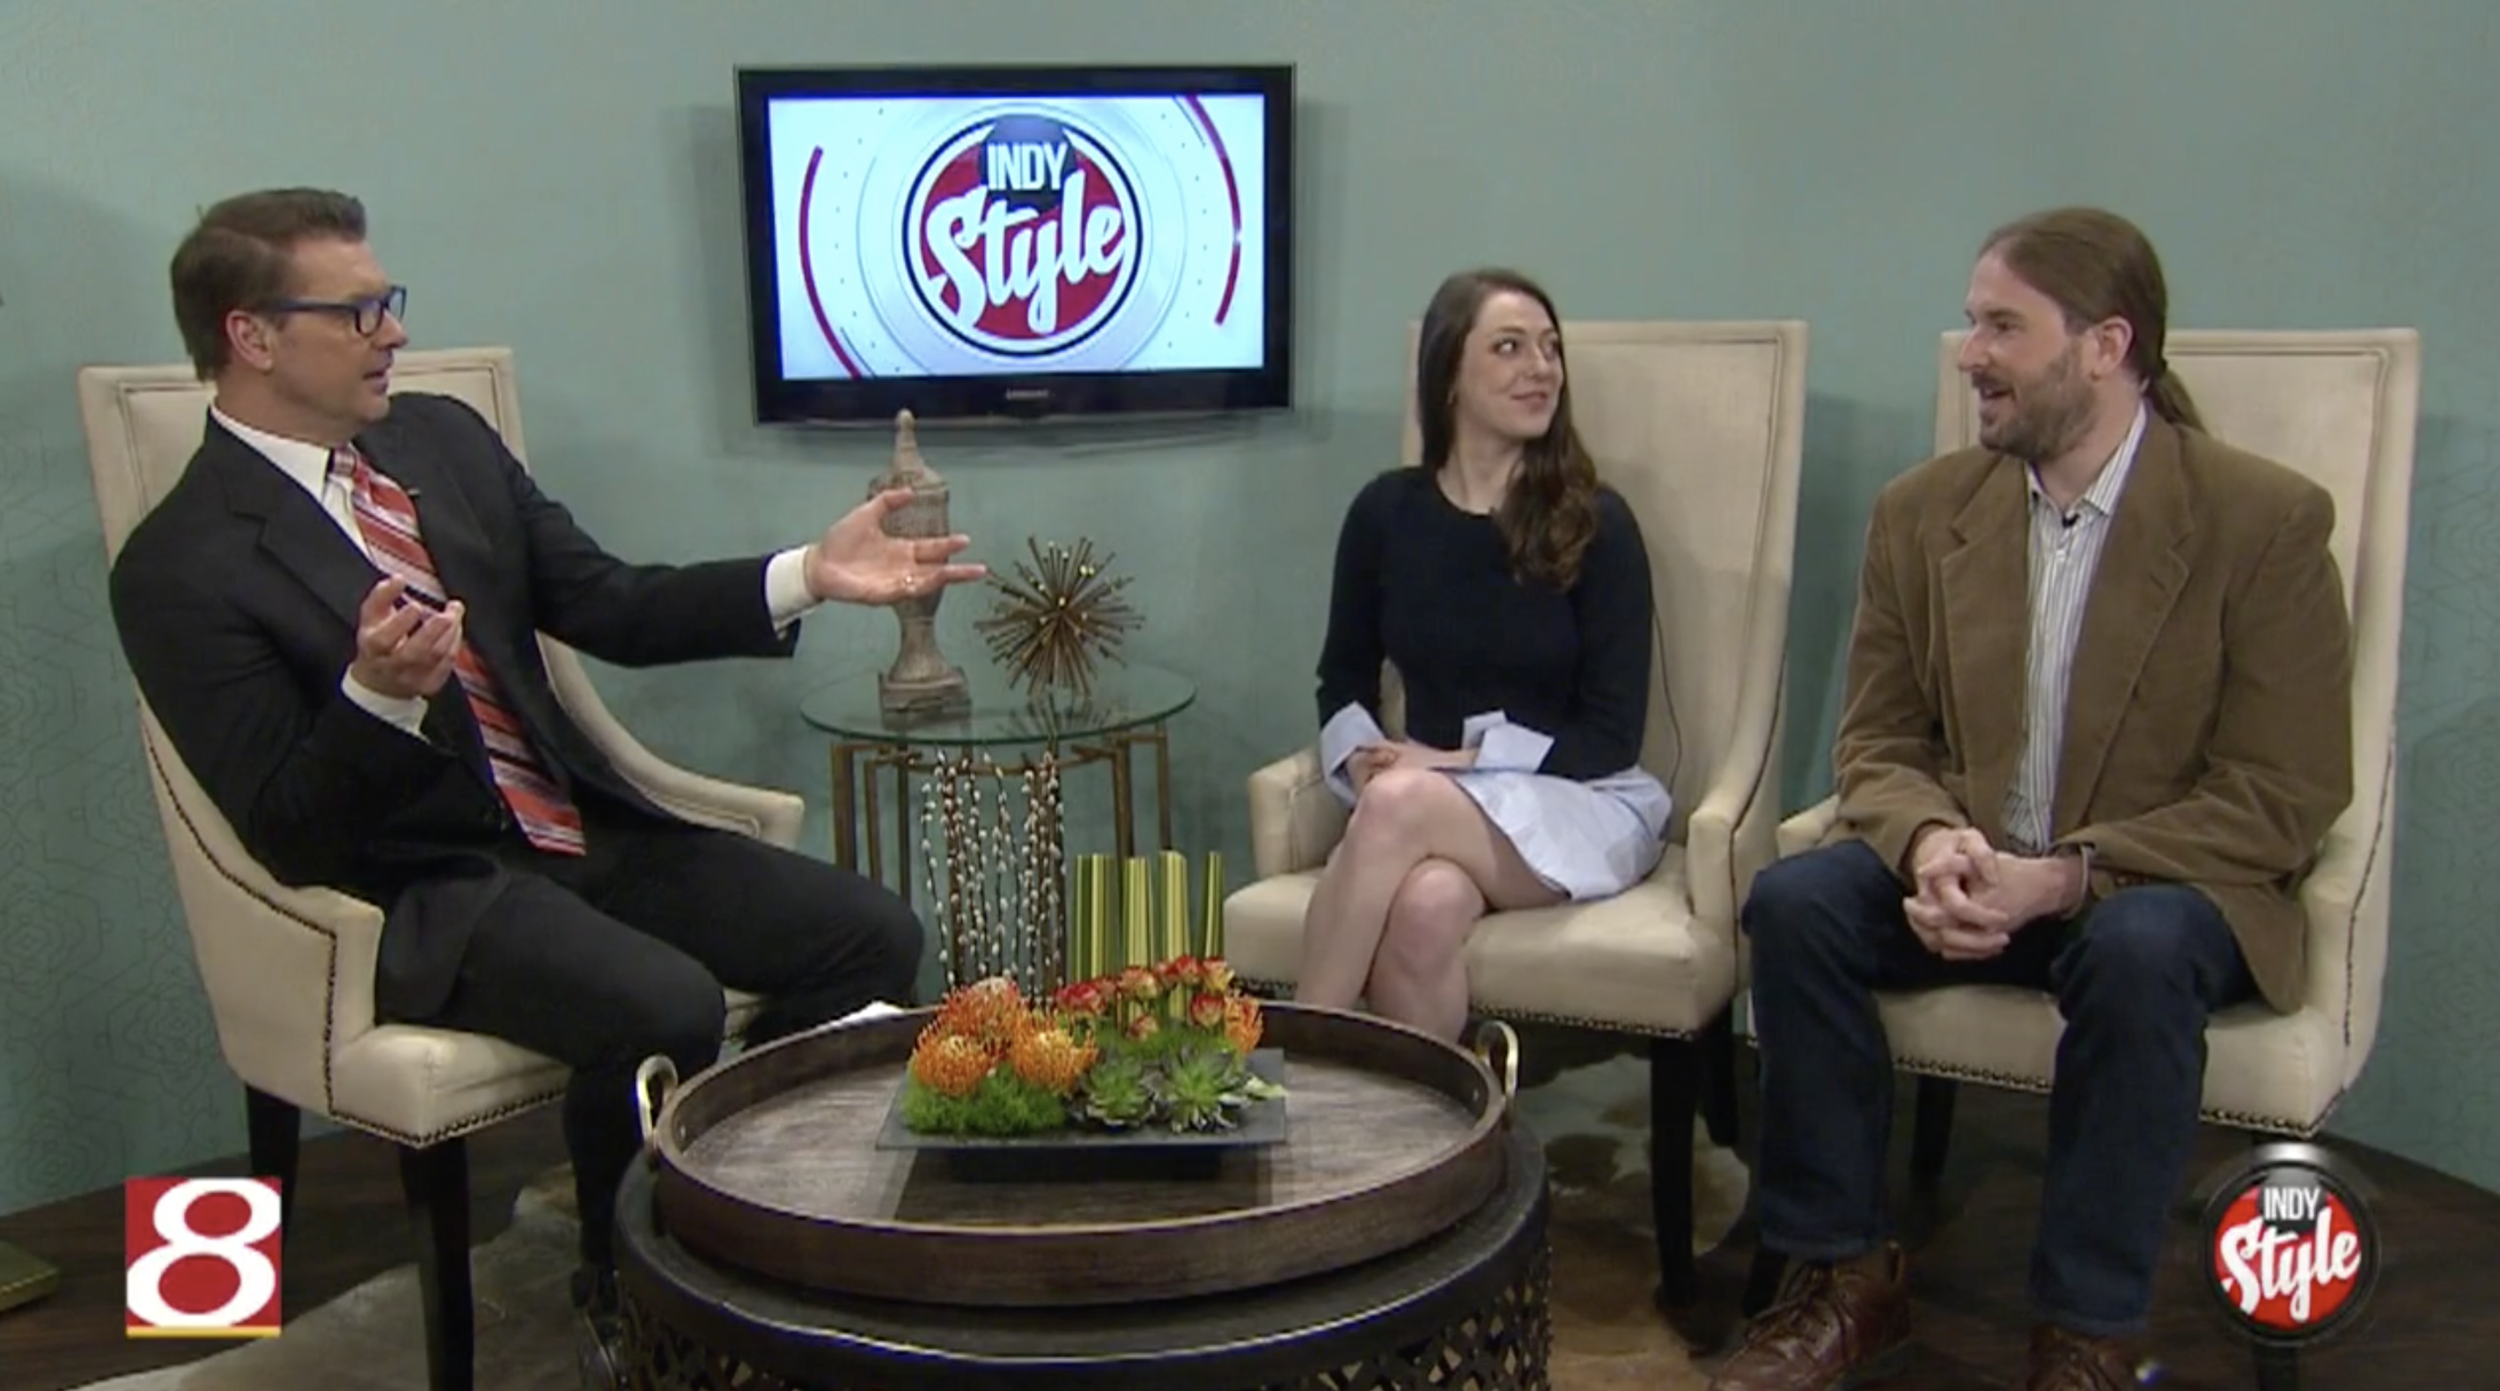 'Critically acclaimed films make up Indy Film Fest lineup' Indy Style, WISHTV - Watch the Interview with Grace Hannoy and Indy Film Fest's Dan Moore!